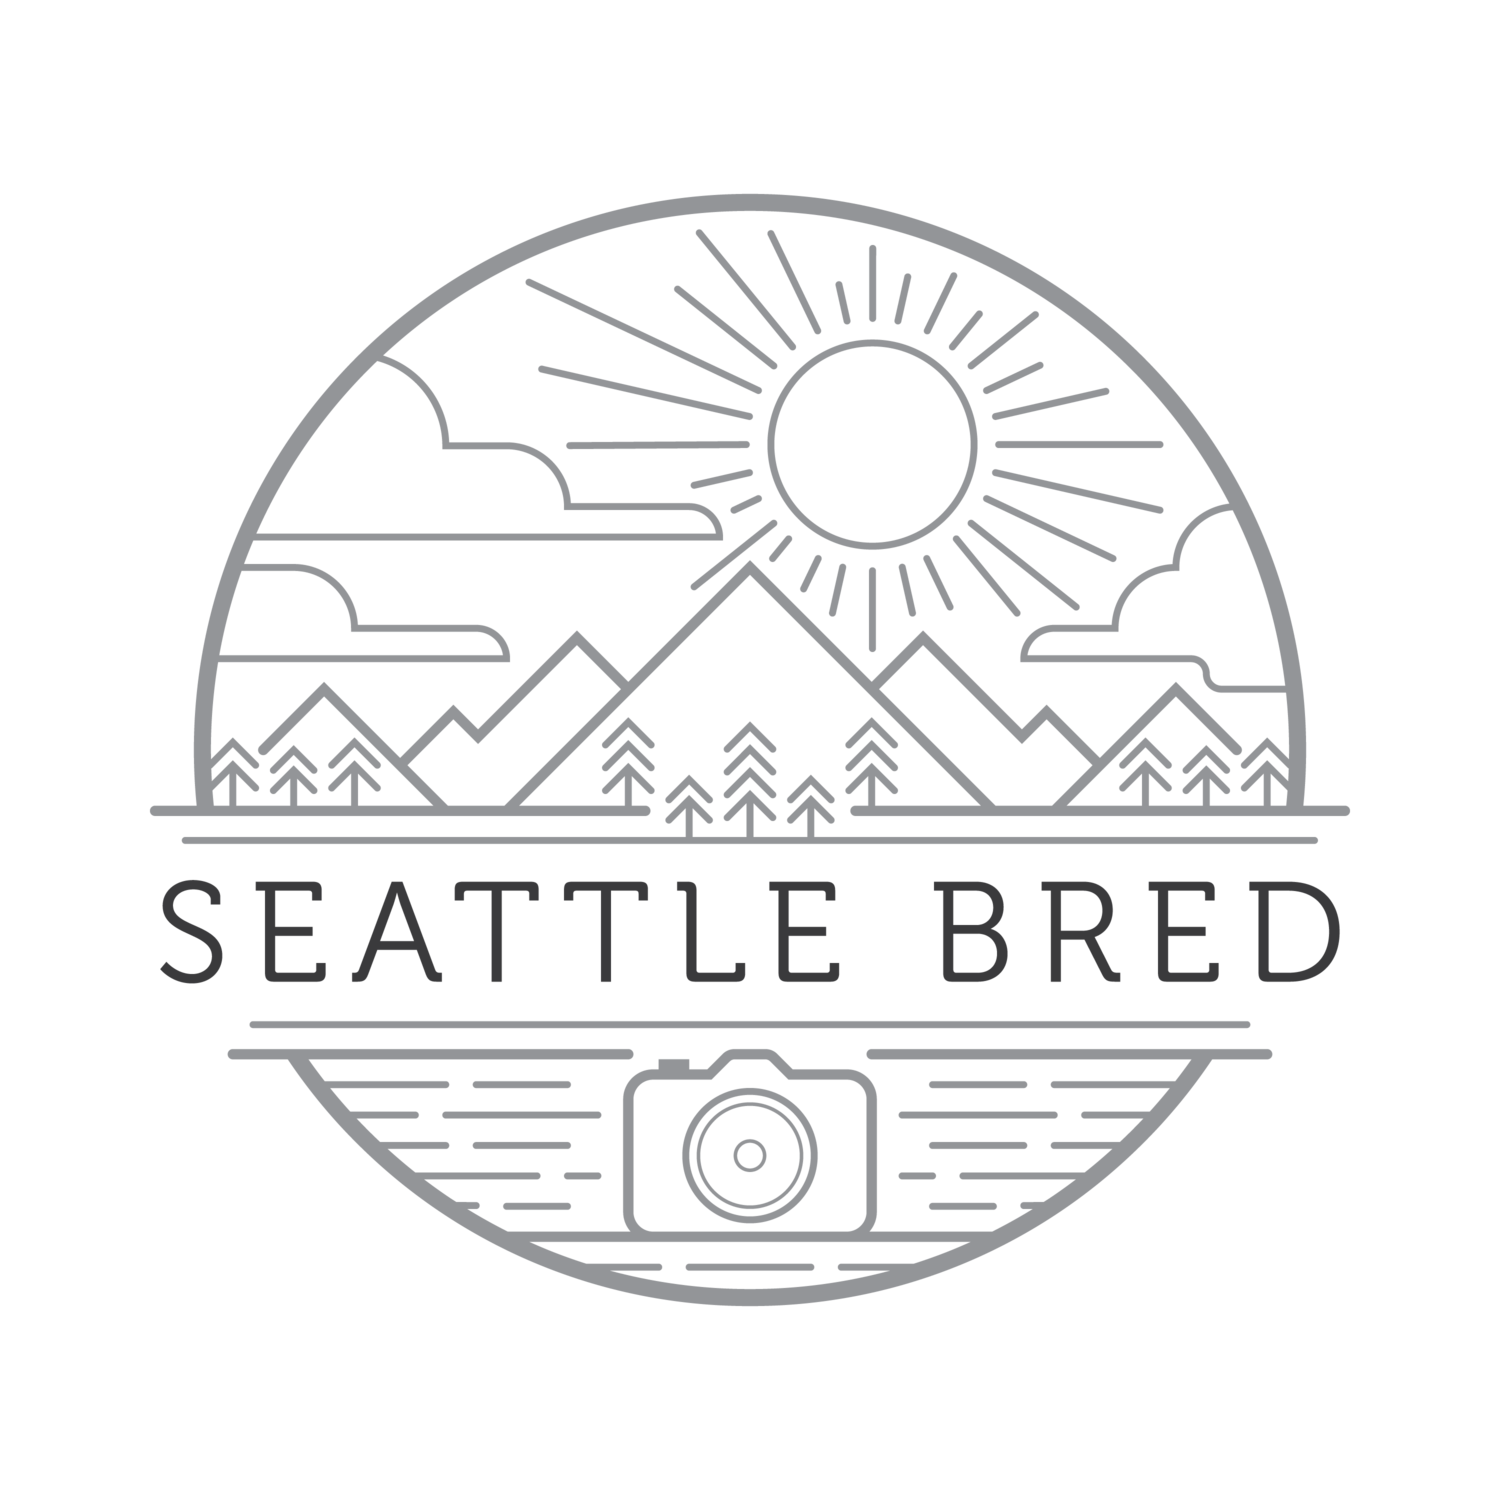 Seattle Bred